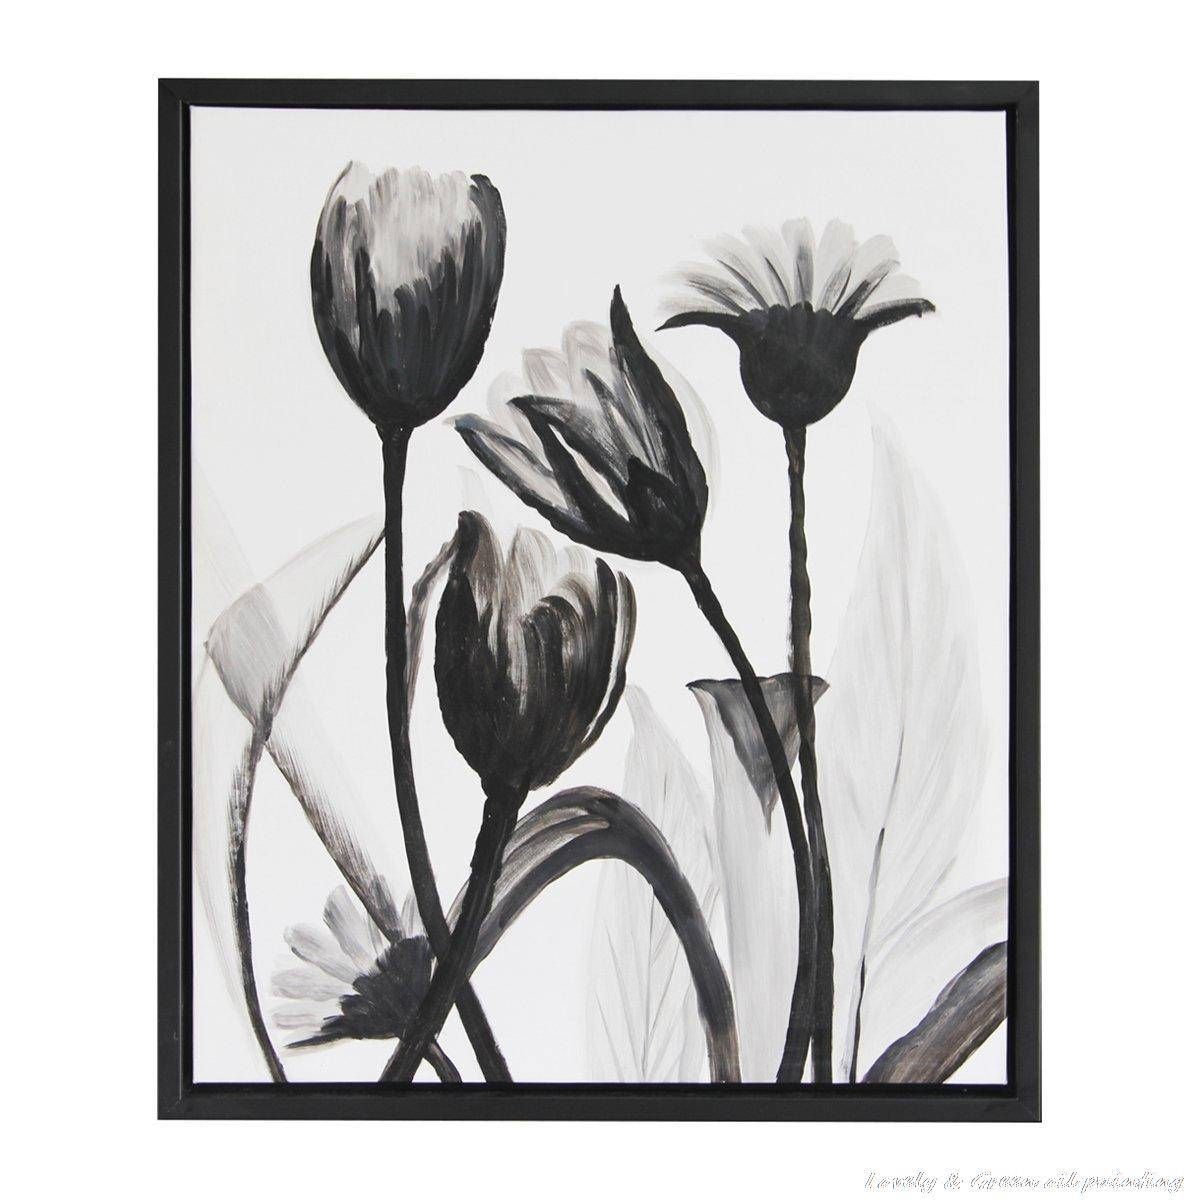 Black And White Flower Wall Art – Wall Murals Ideas Regarding Most Recent Cheap Black And White Wall Art (View 18 of 20)